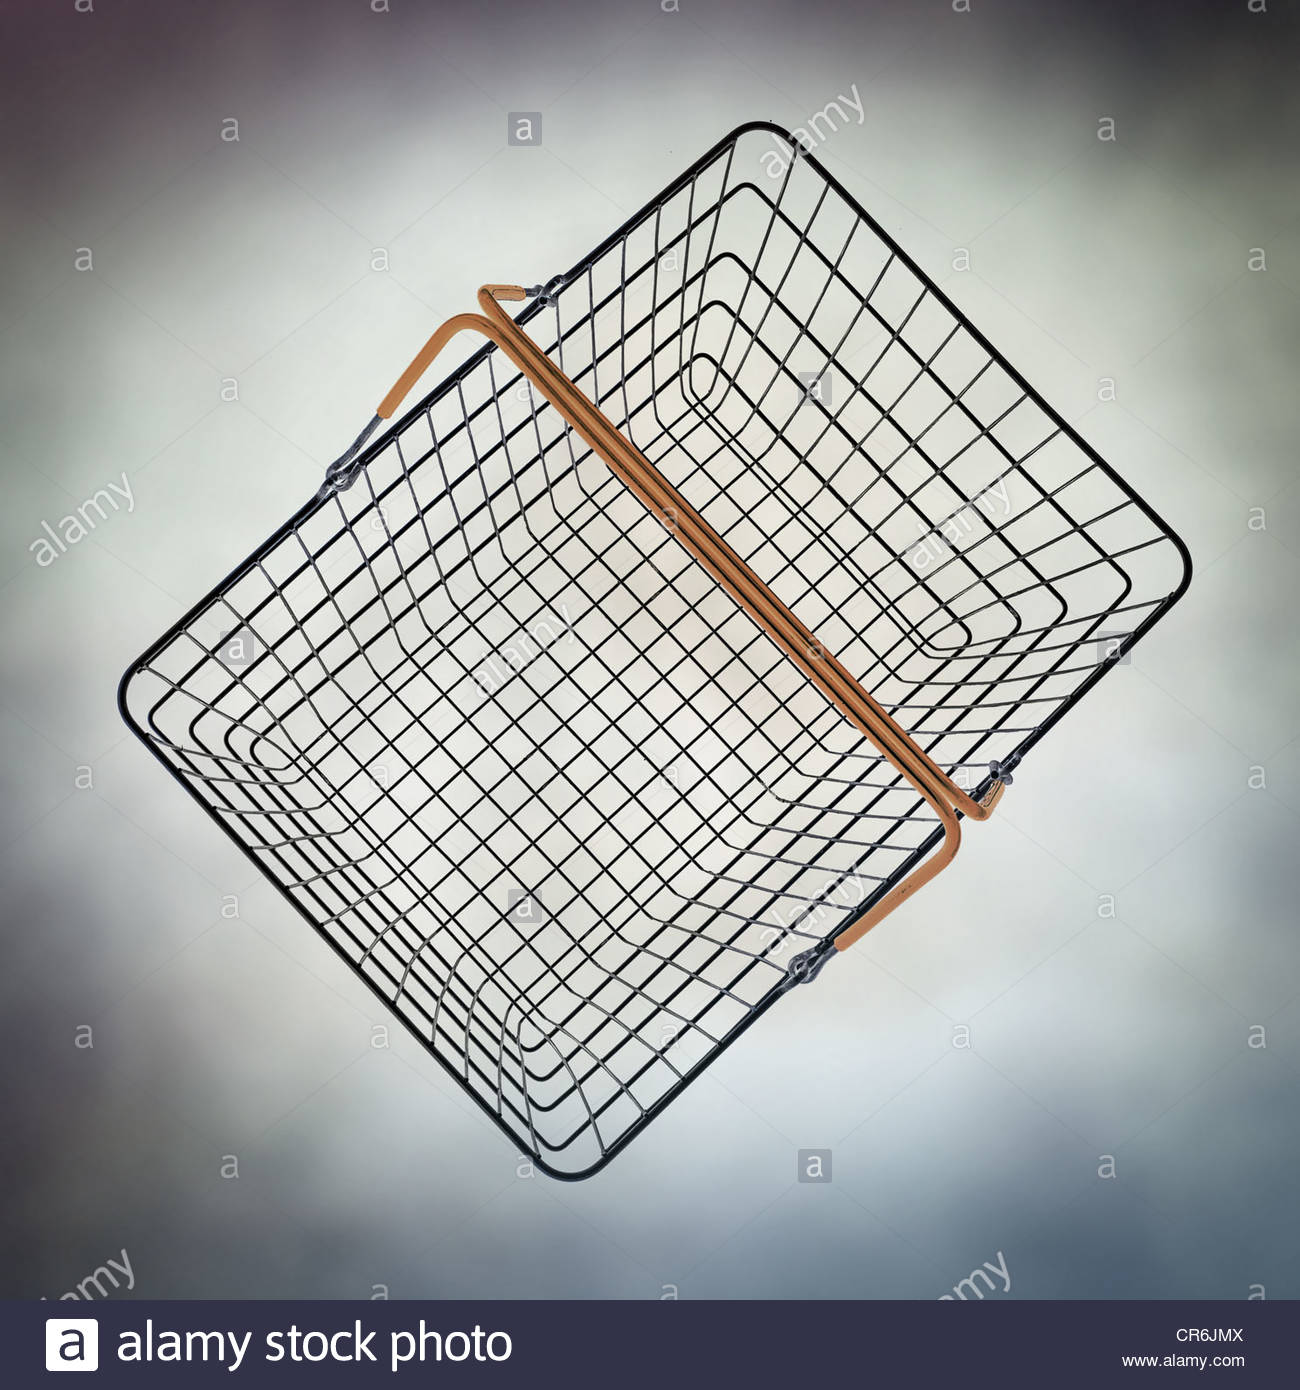 empty wire basket - Stock Image